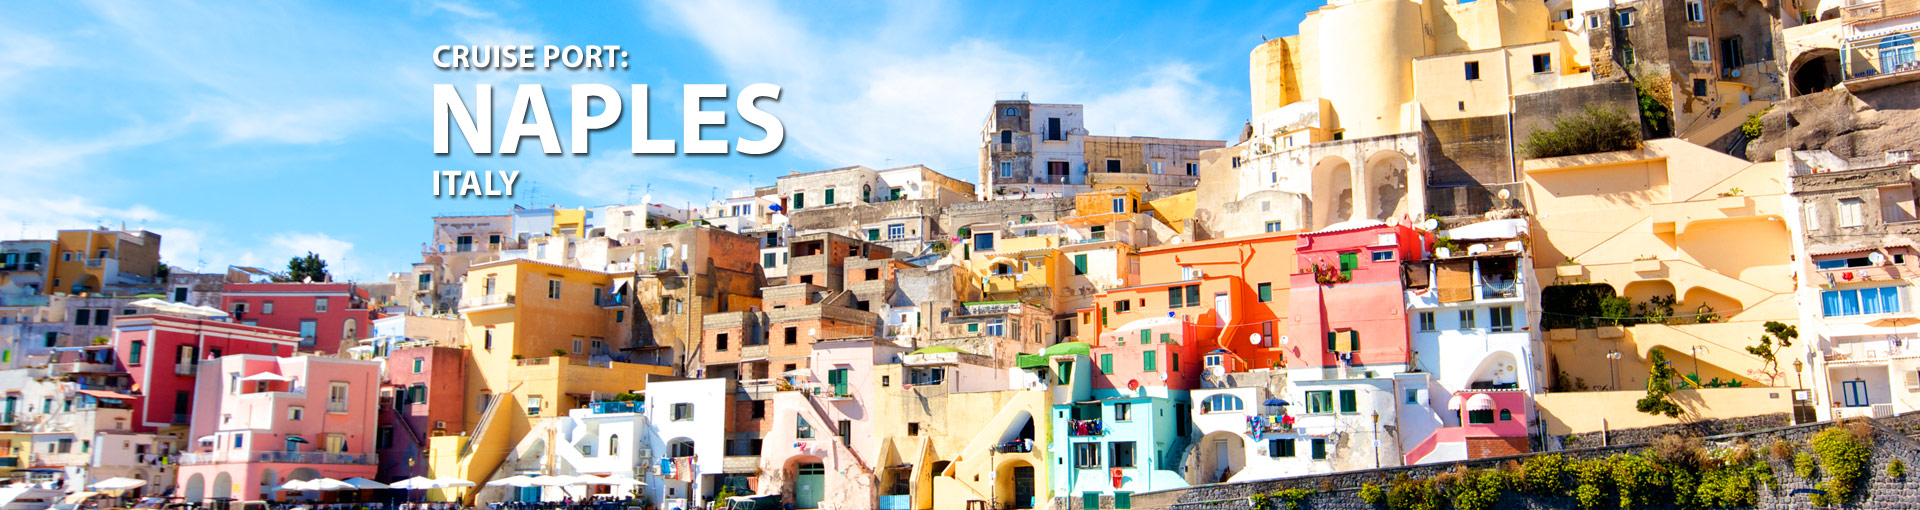 Cruises from Naples, Italy